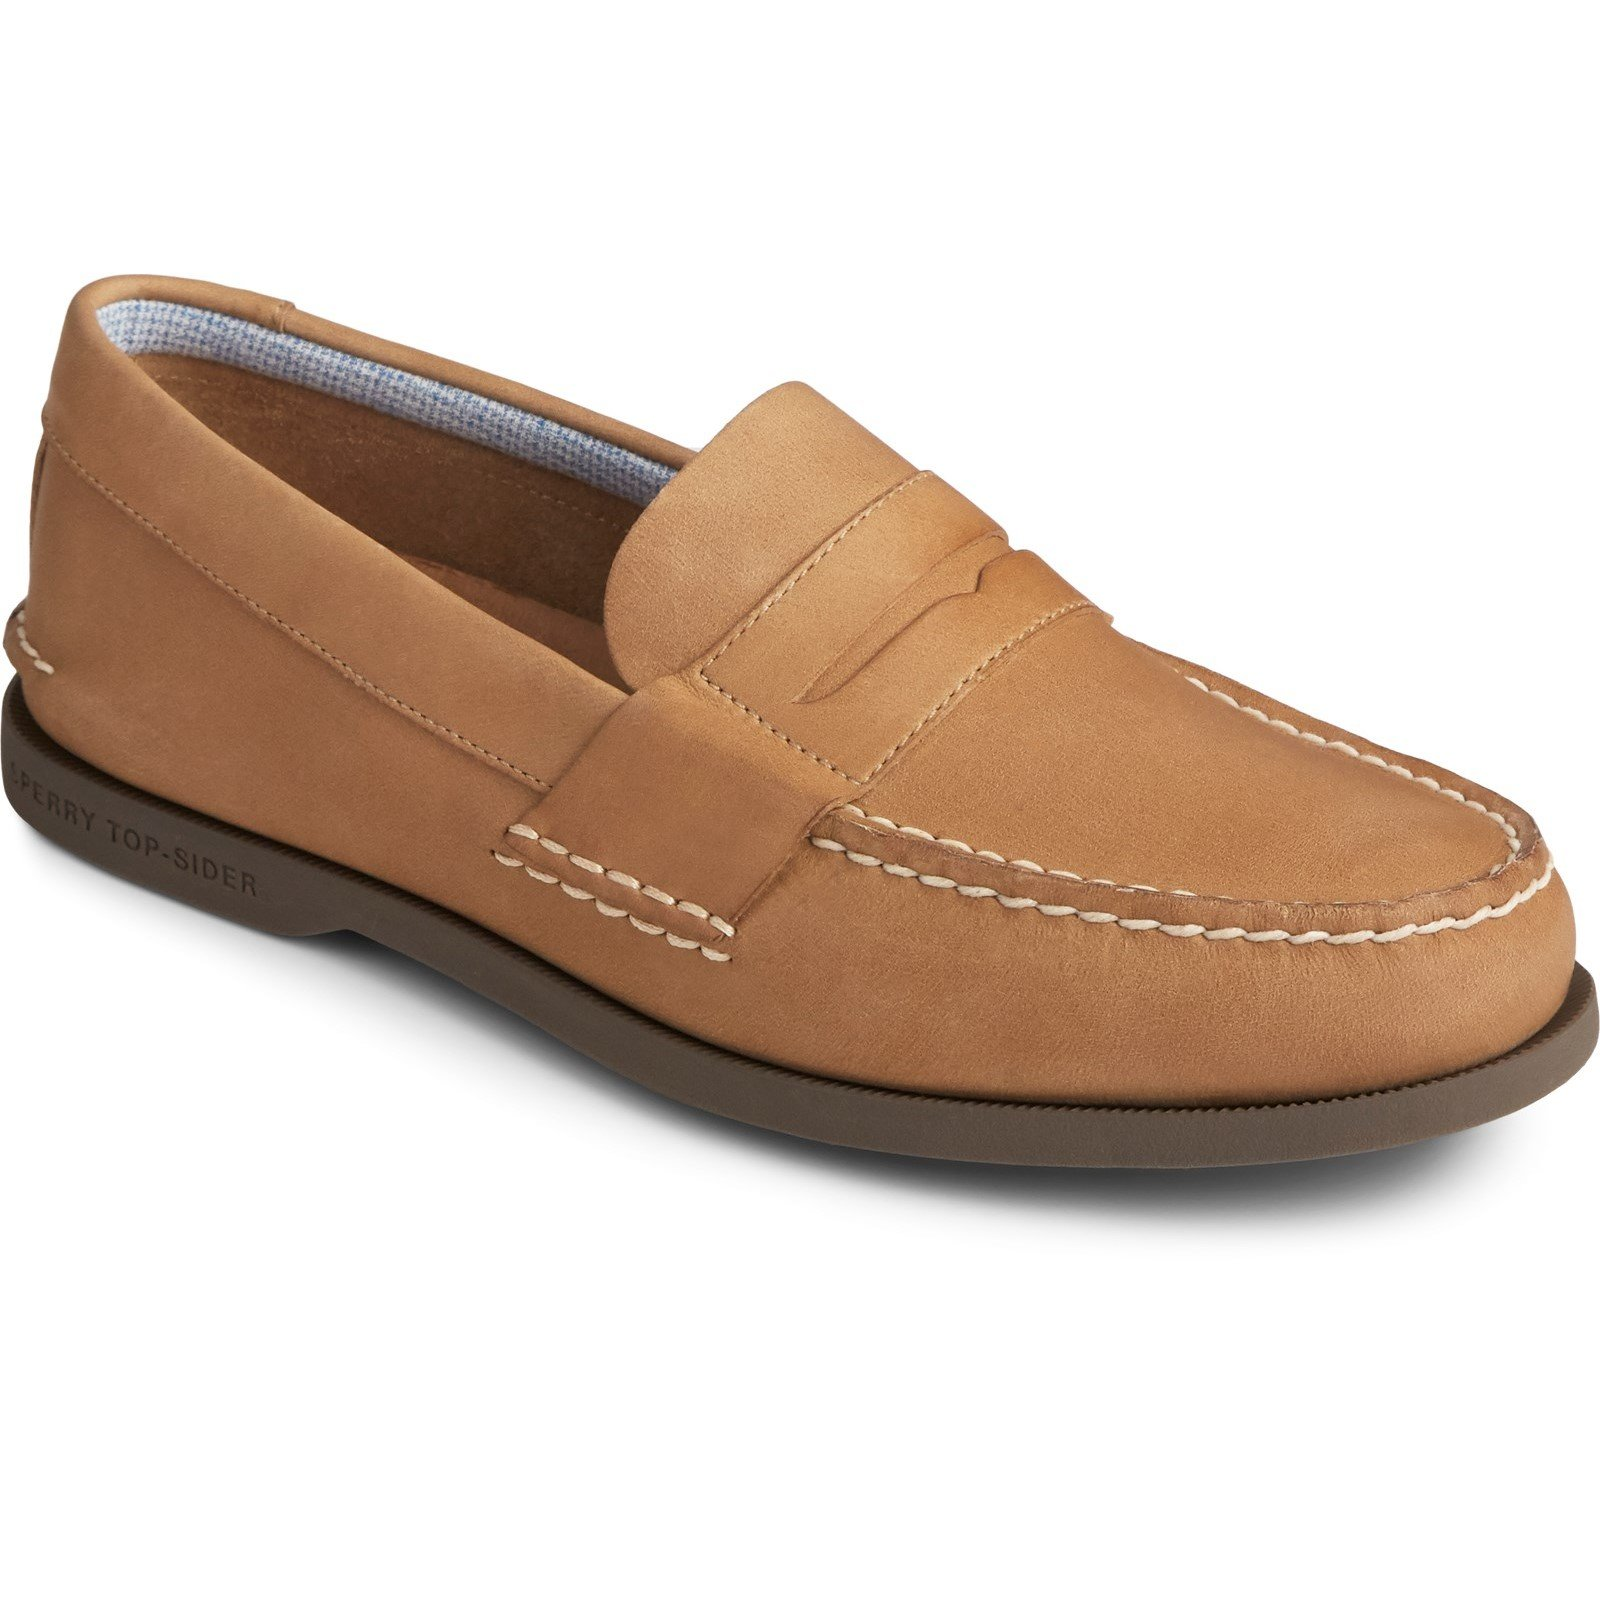 Sperry Men's Authentic Original Penny Loafer Various Colours 31733 - Sahara 12